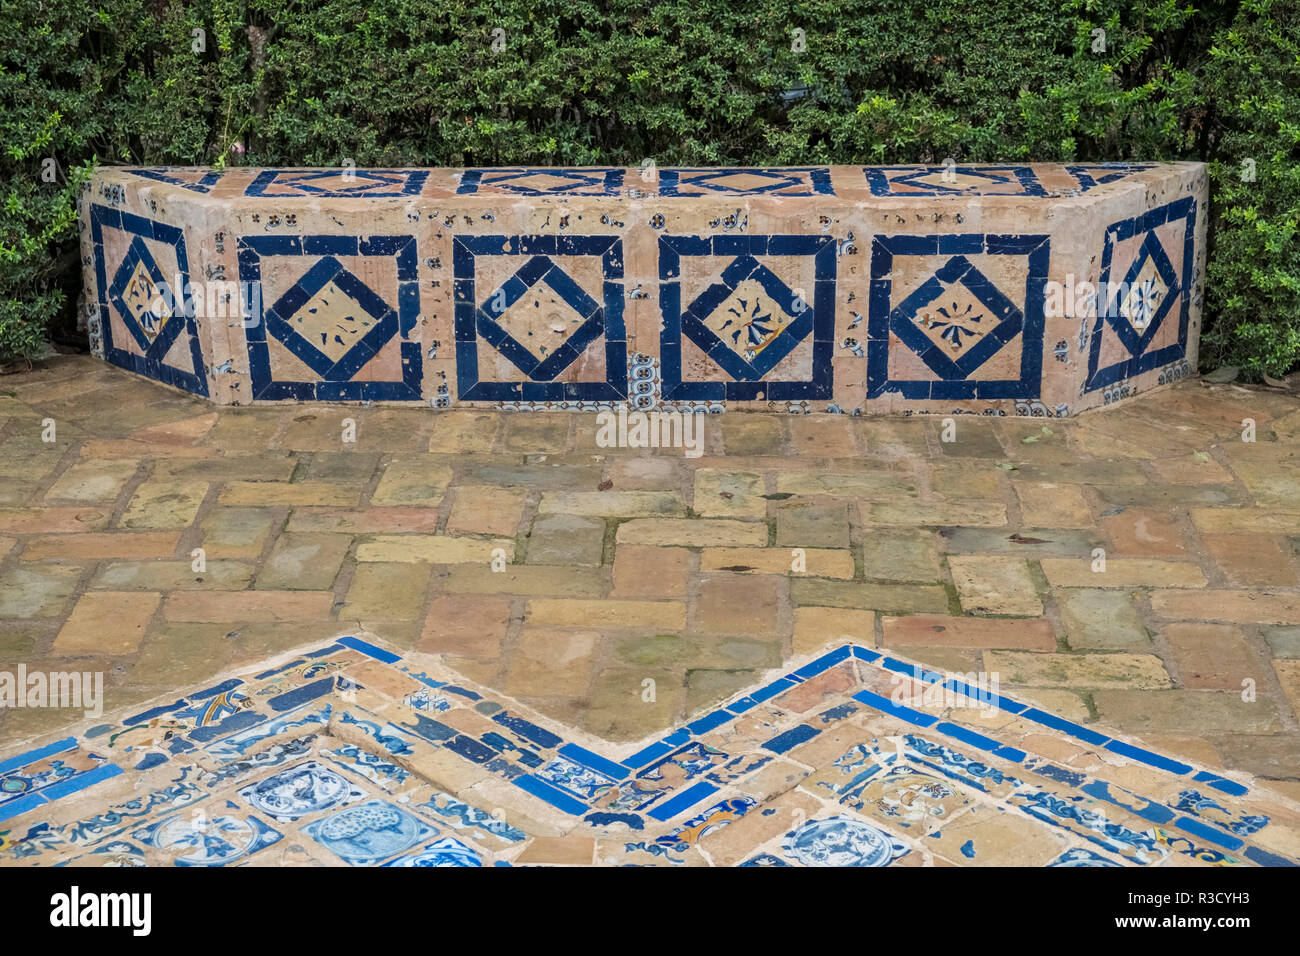 Ornate decorative ceramic tiles used for a small seating area in the Real Alcazar, Seville, Andalucia, Spain - Stock Image